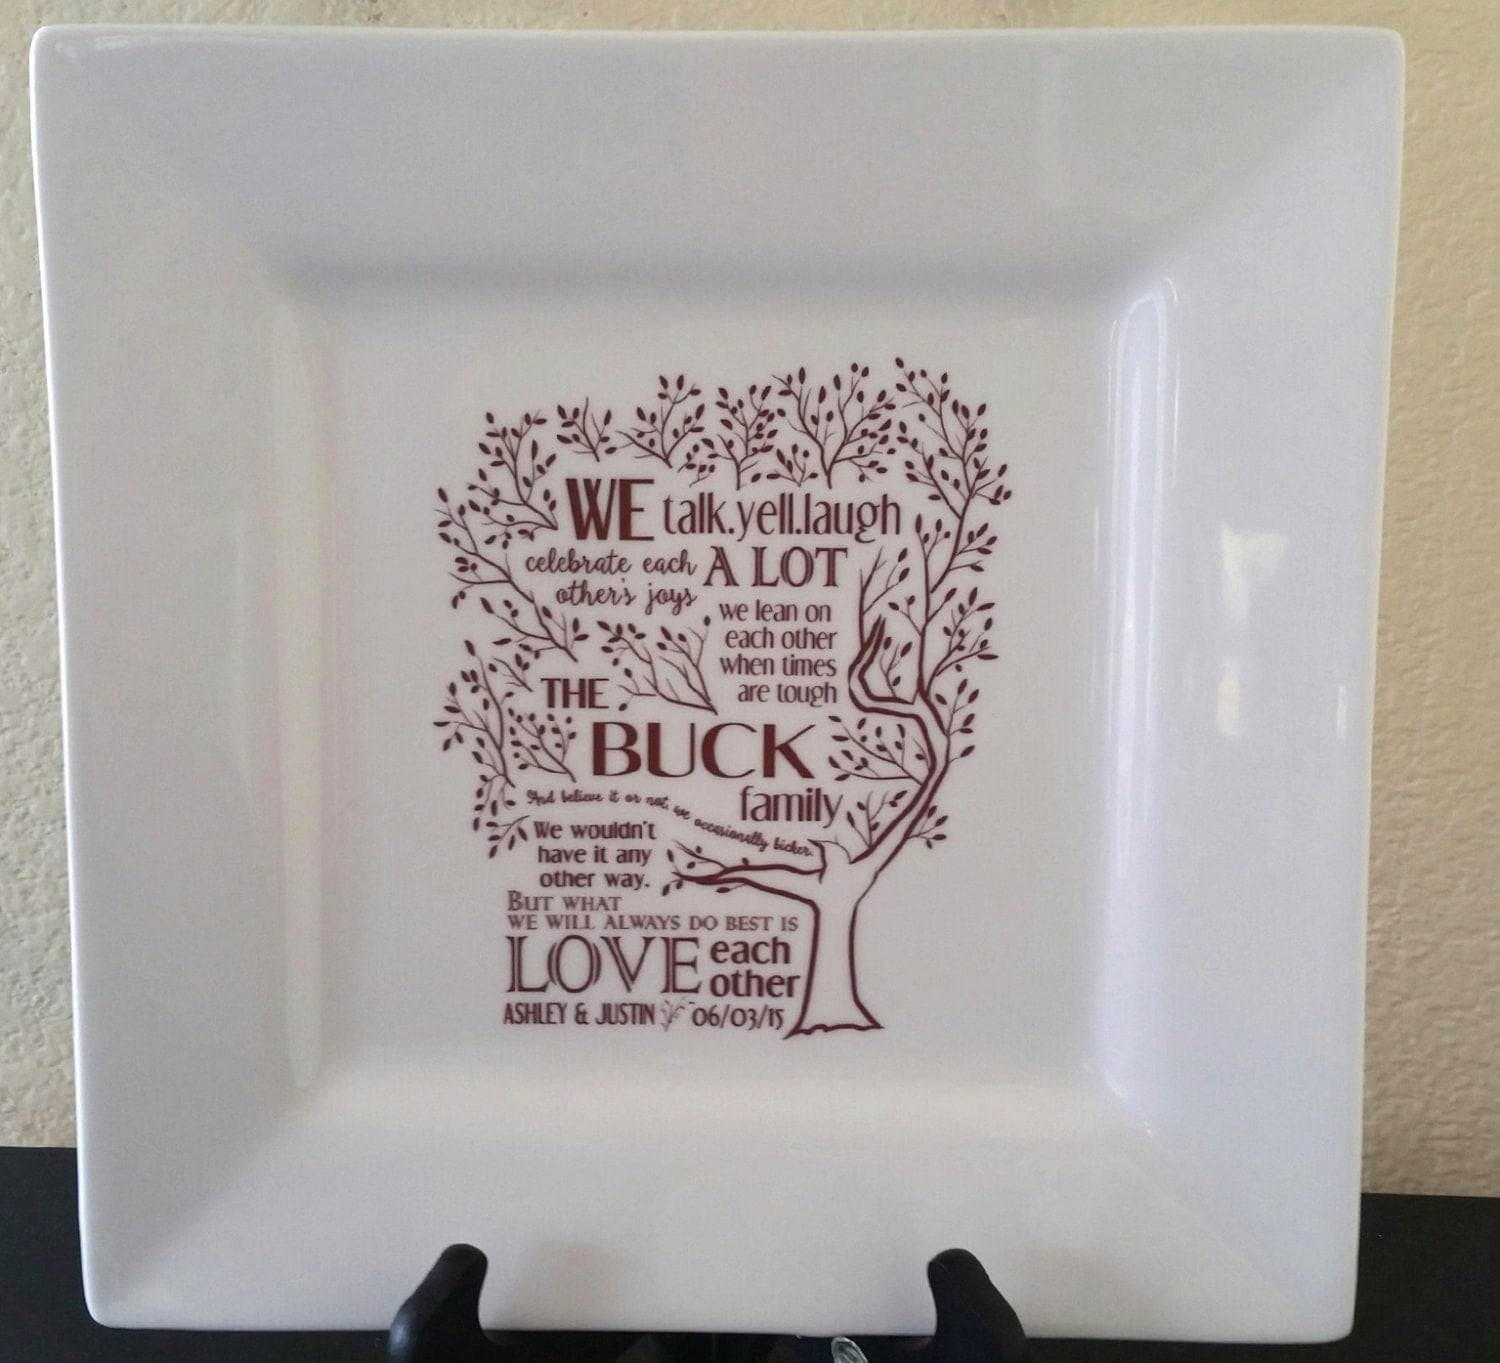 Wedding Gift Thank You Poem : Parent Wedding GiftFamily Poem Thank You Platter from Bride